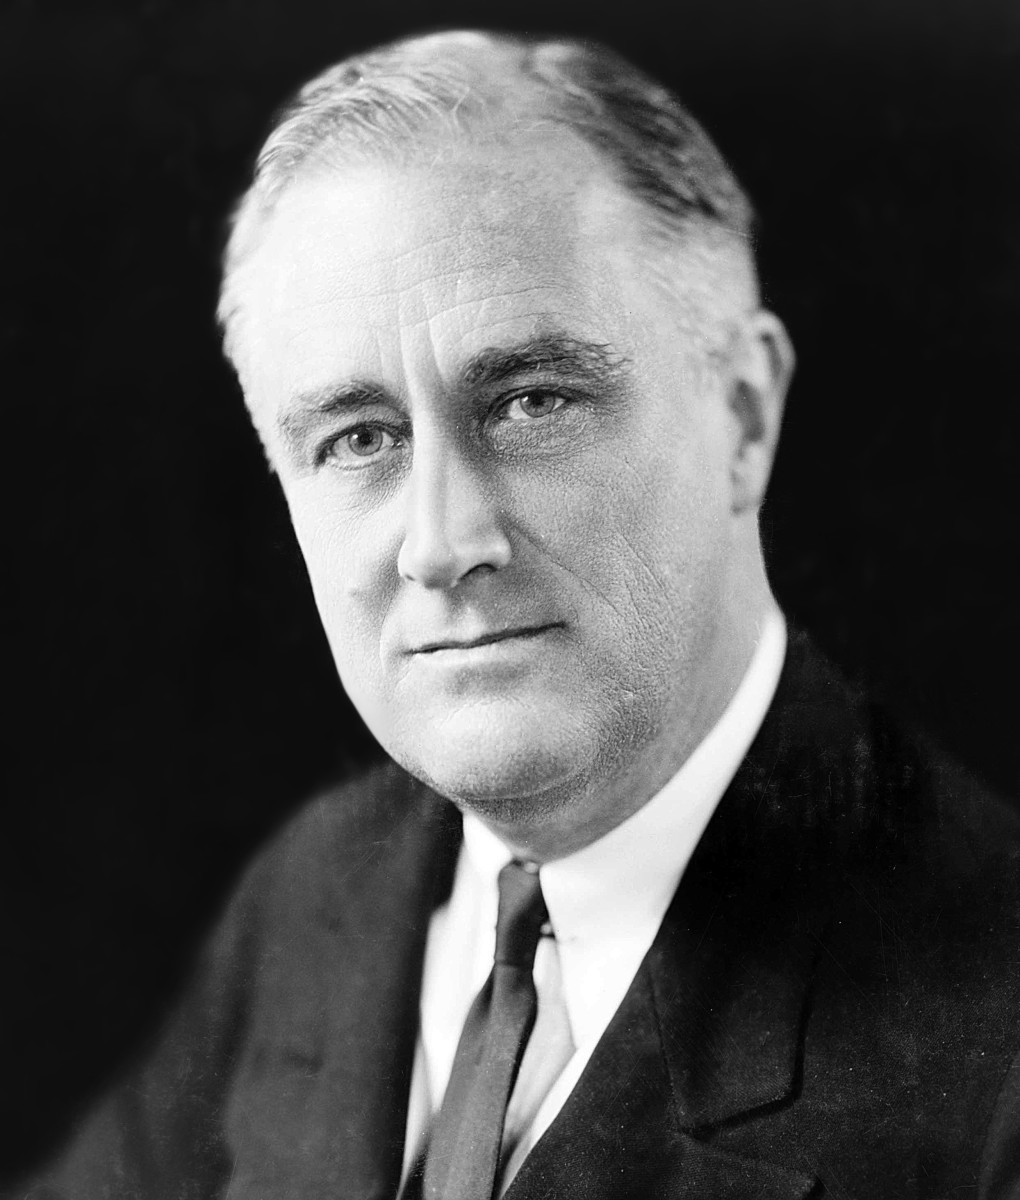 franklin d roosevelt u s president com fdr in 1933 photo elias goldensky 1868 1943 public